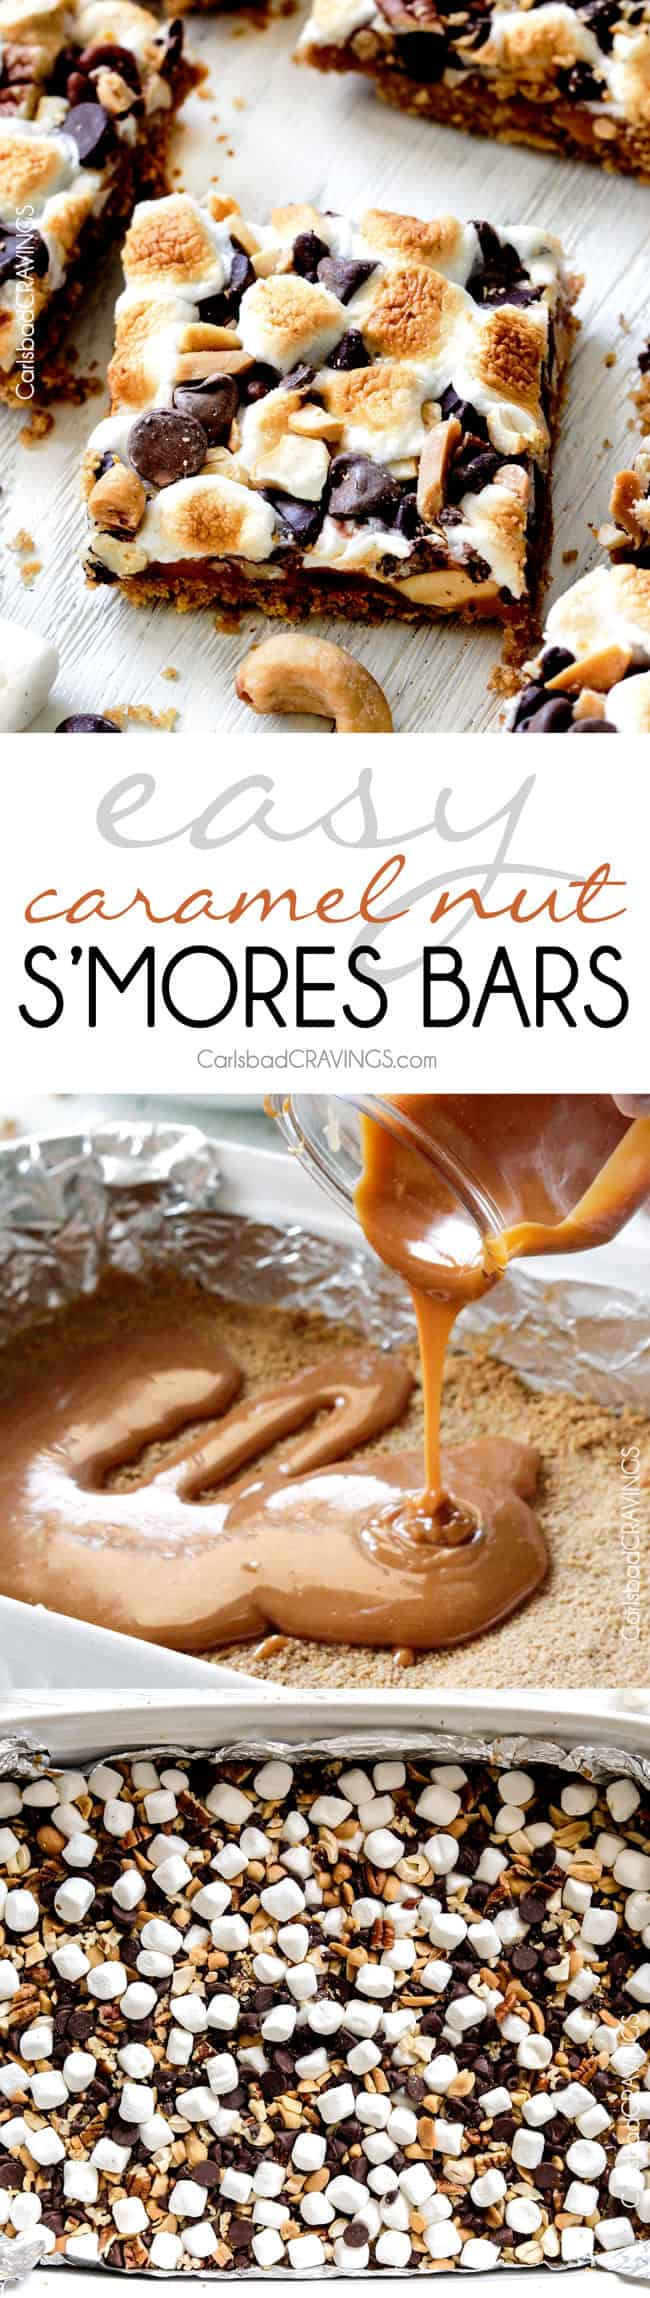 Caramel Nut S'more Bars are SUPER easy and crazy delicious -great for crowds! everything you love about s'mores but with caramel!